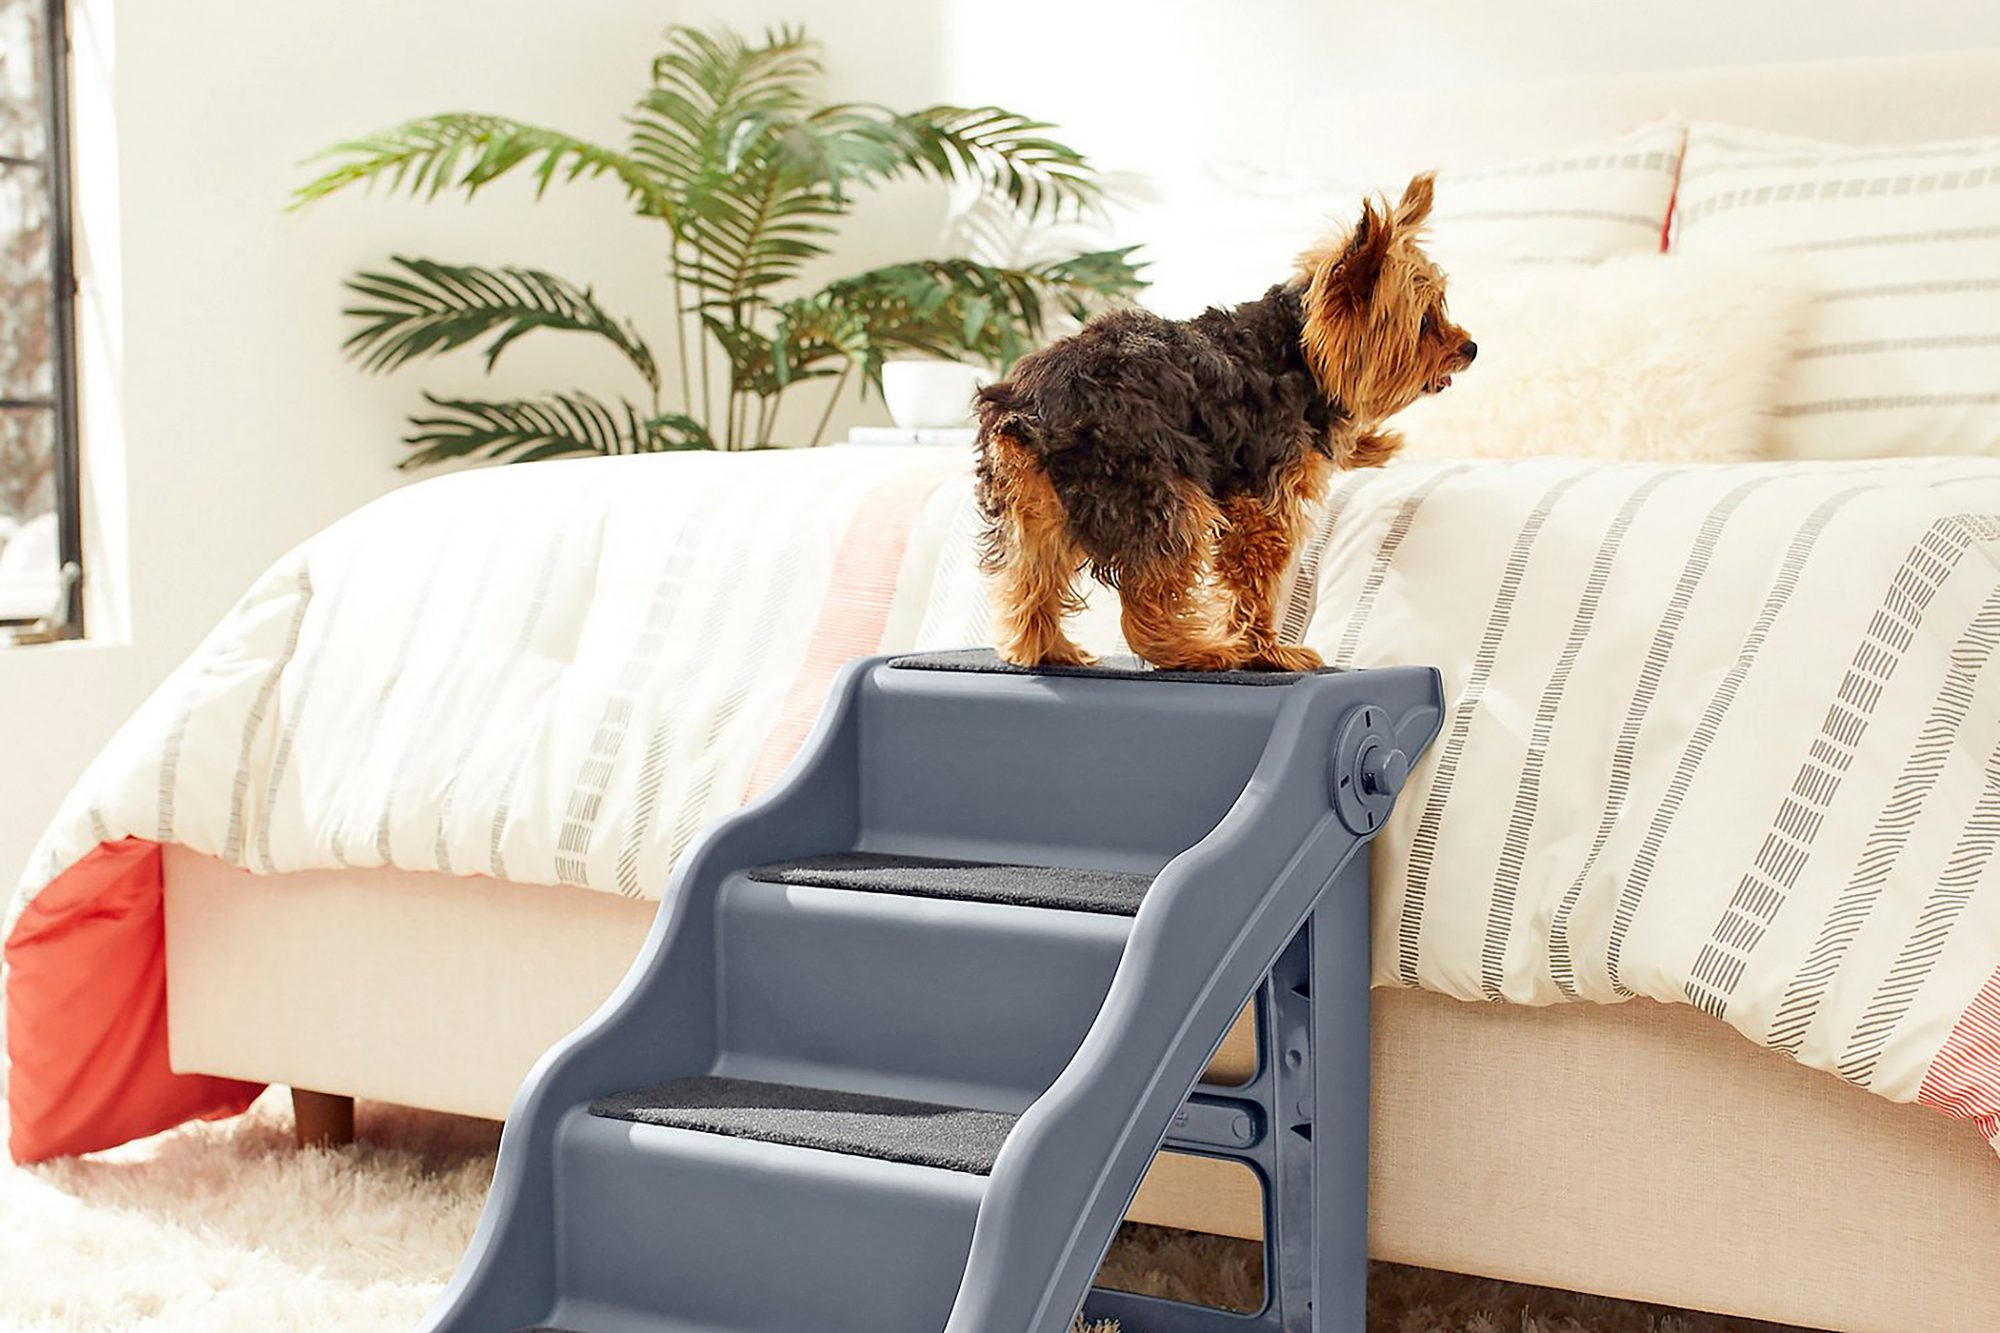 dog walking up dog stairs to get on top of bed